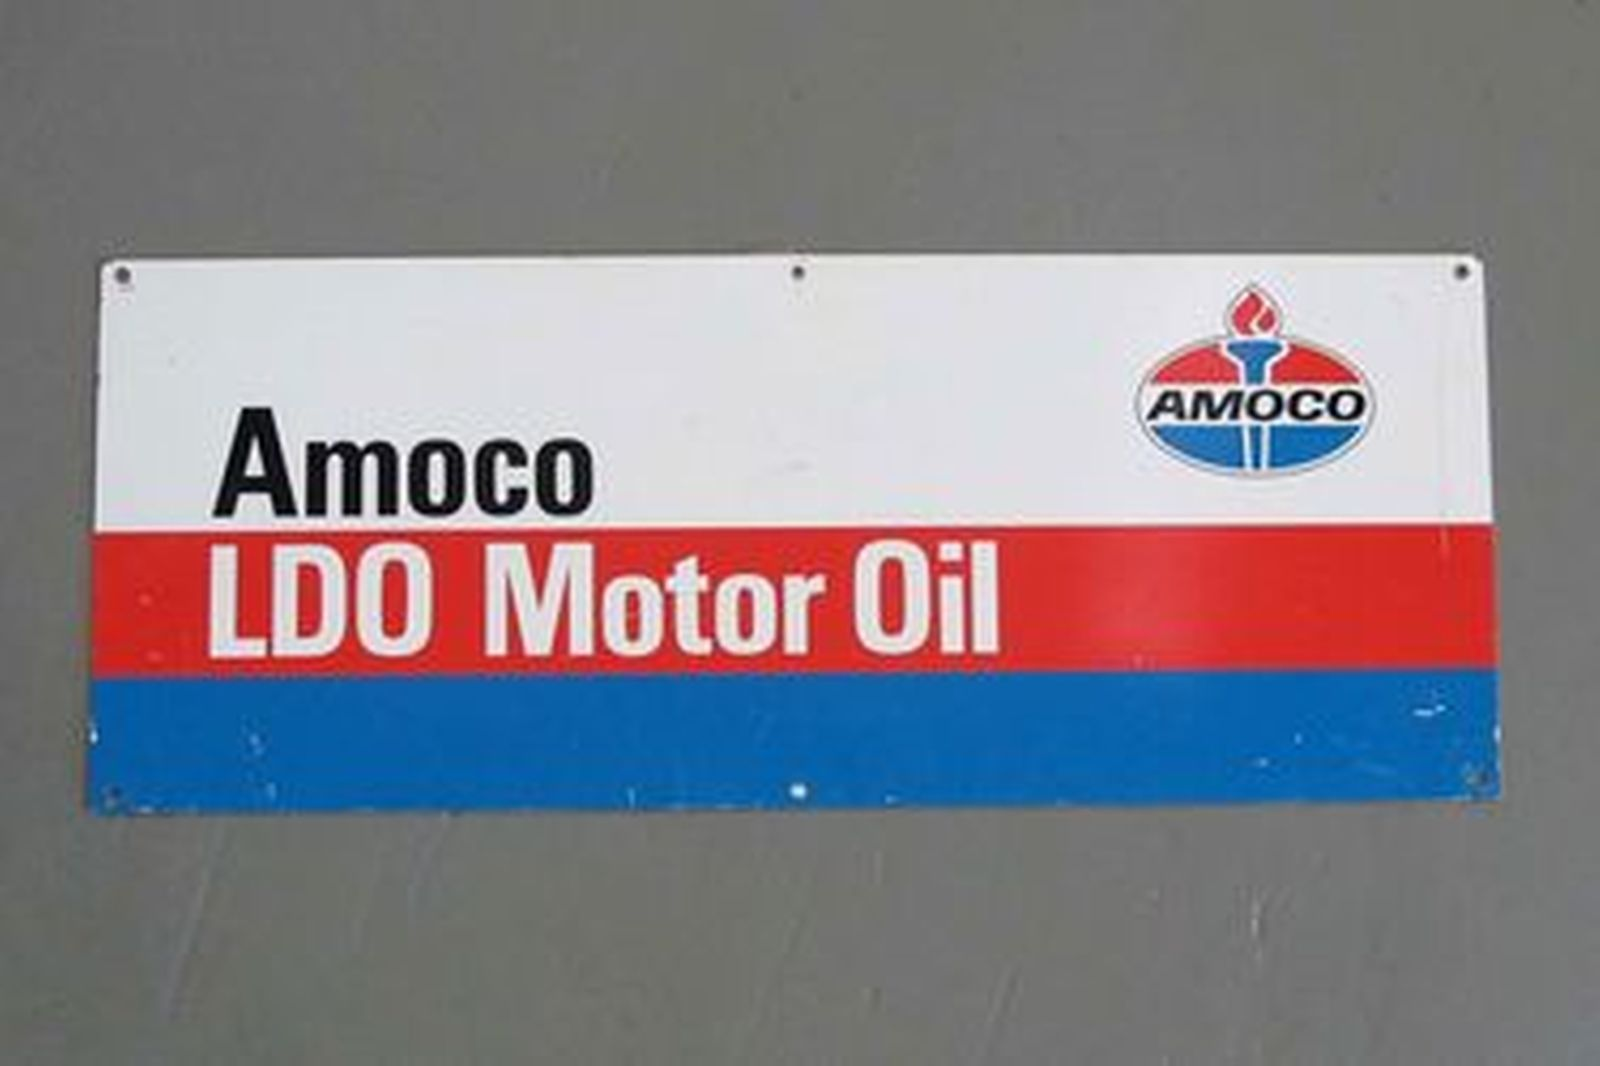 Tin Sign - Amoco LDO Motor Oil Sign (76cm long x 30cm wide)